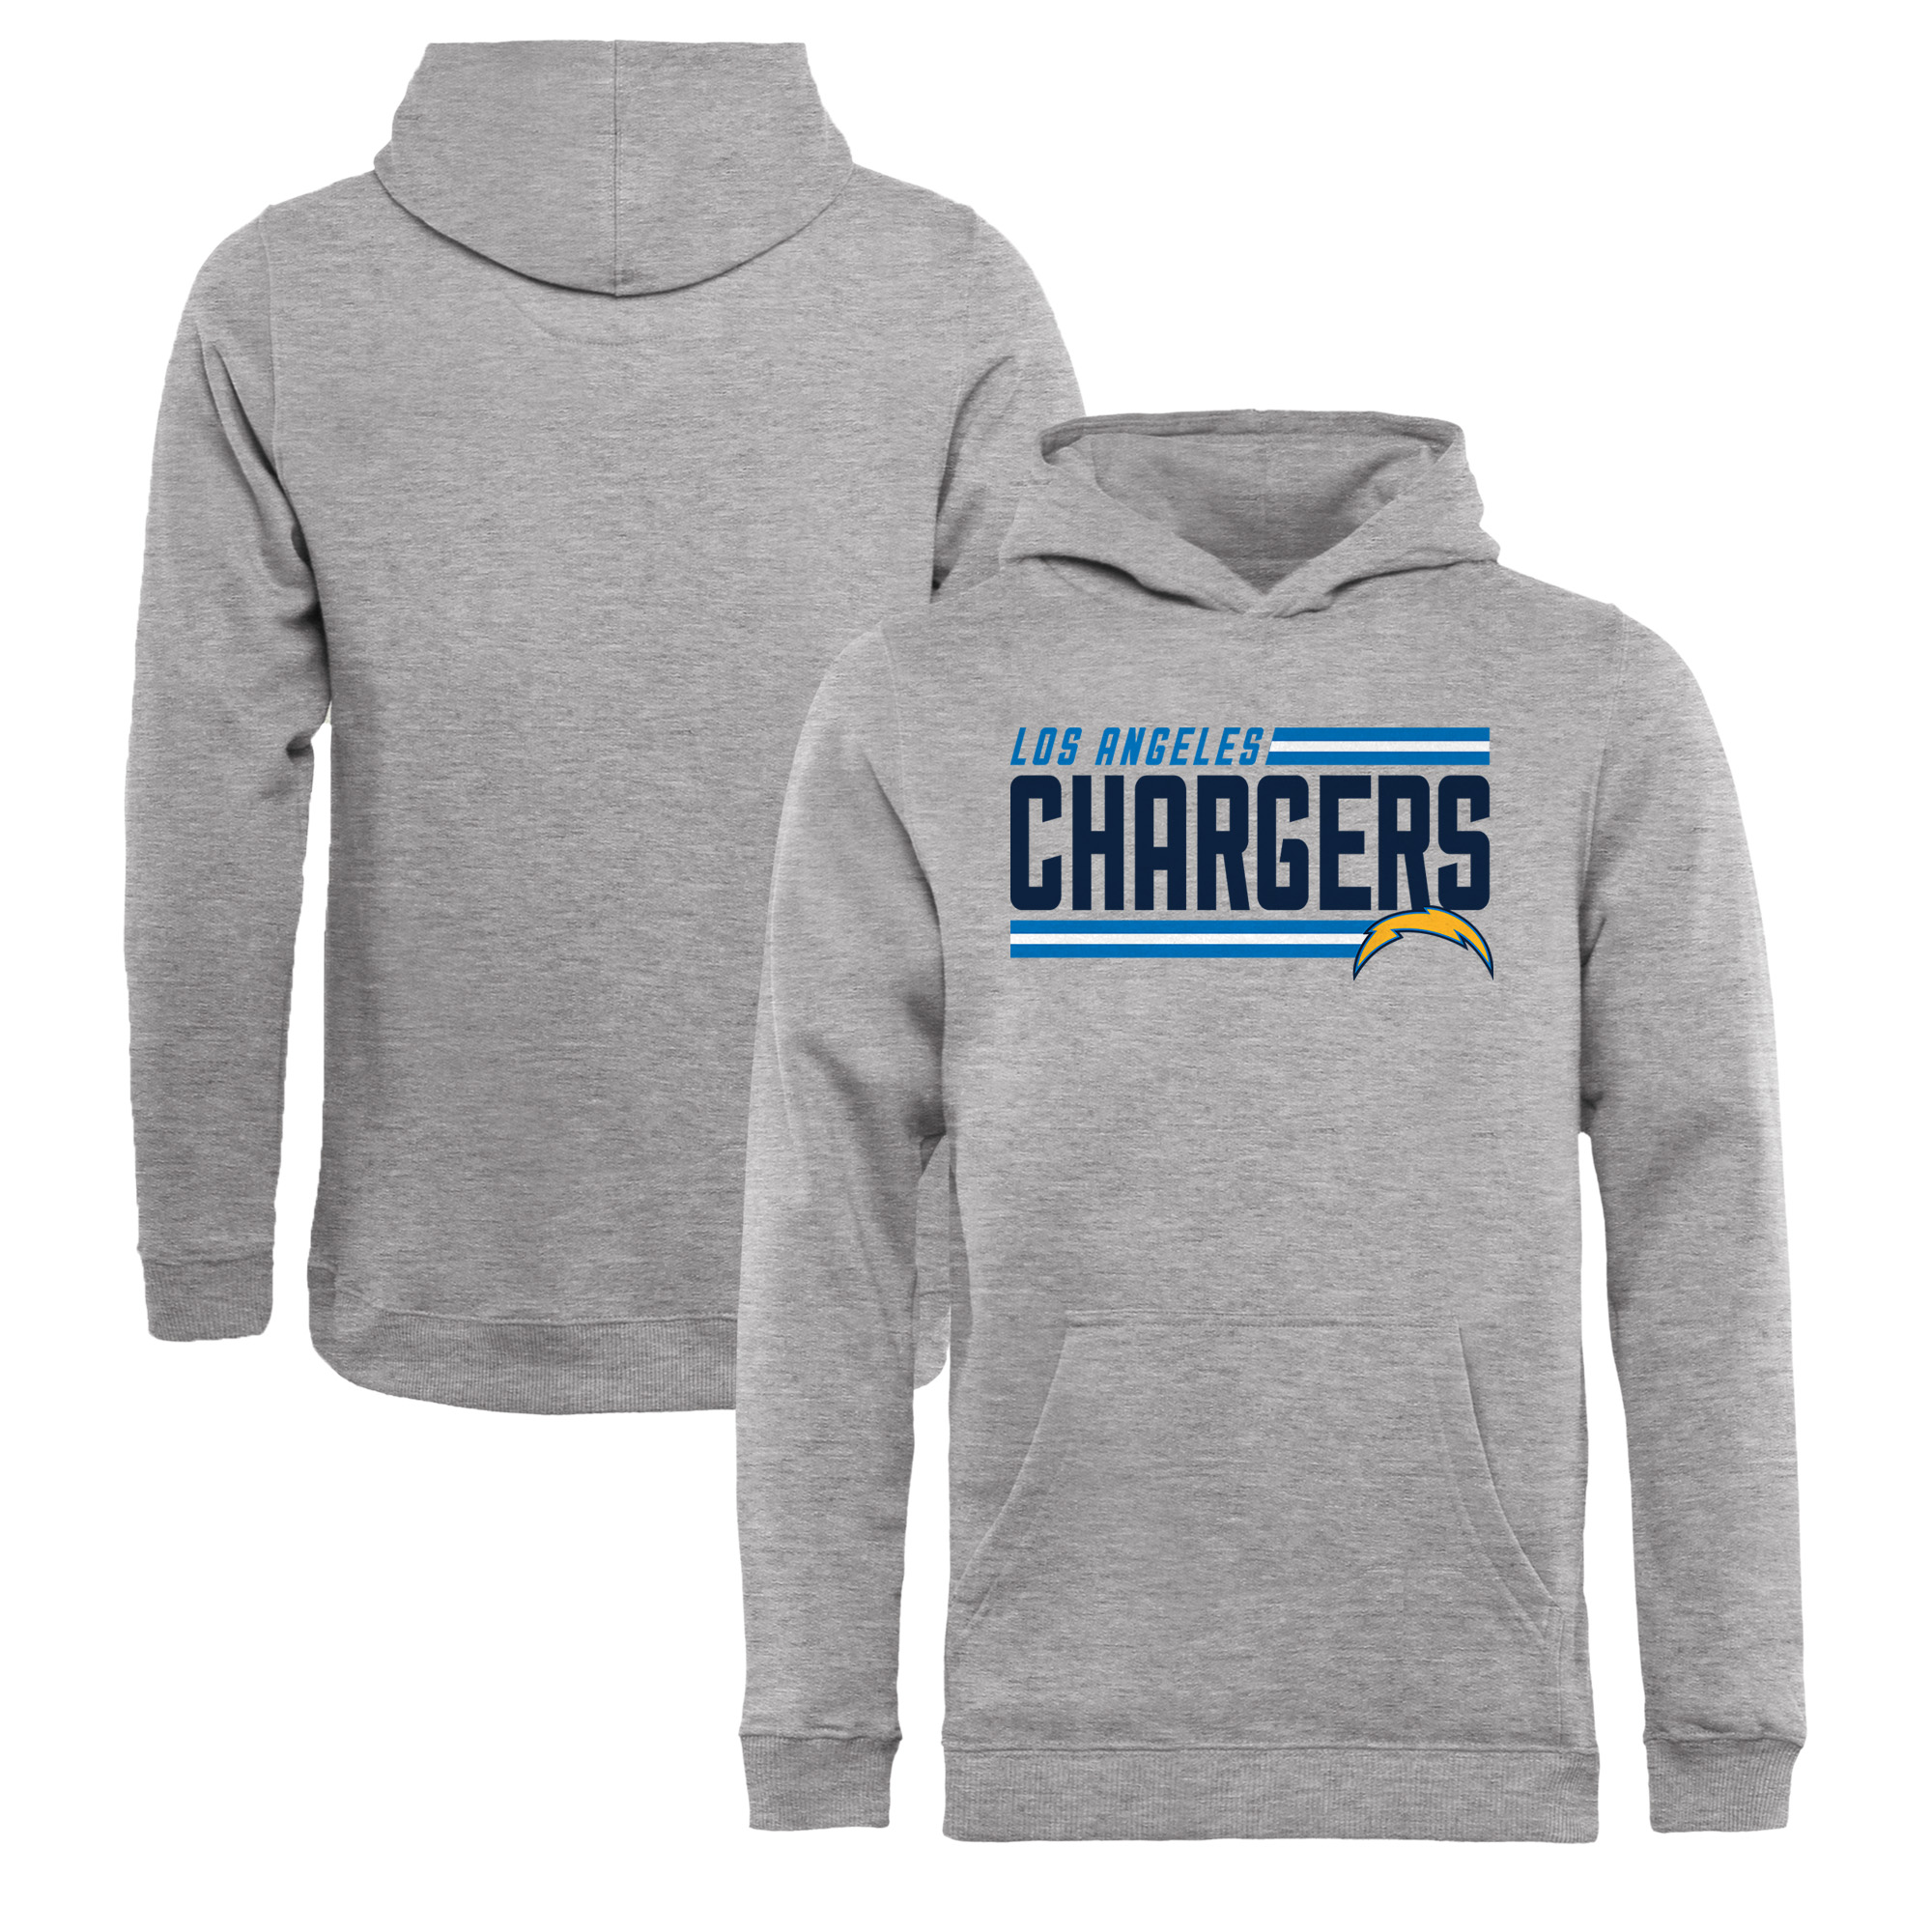 Los Angeles Chargers NFL Pro Line by Fanatics Branded Youth Iconic Collection On Side Stripe Pullover Hoodie - Ash